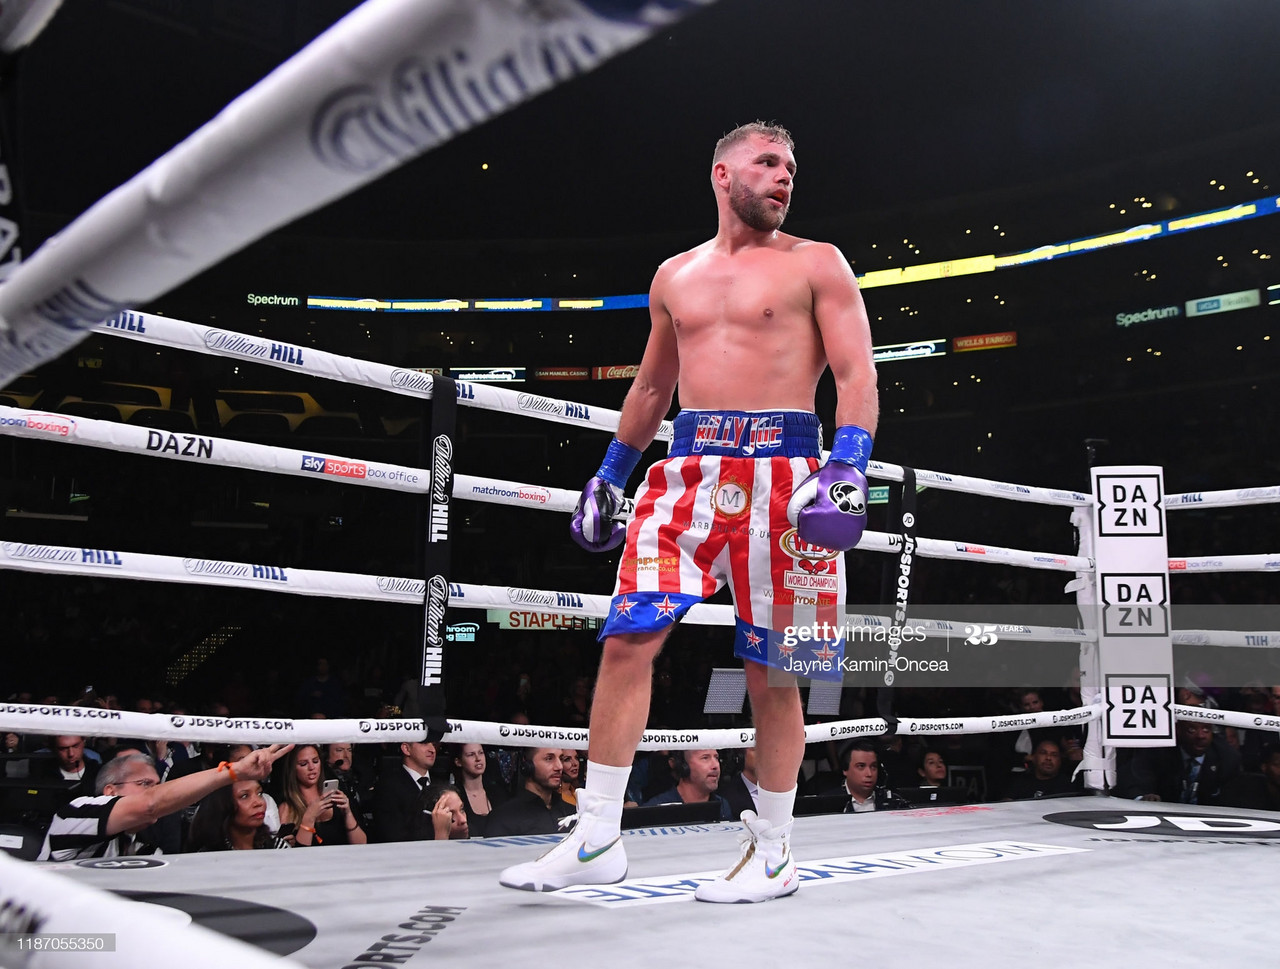 Billy Joe Saunders made the second defence of his WBO Super Middleweight title (PIC: Jayne Karmin Oncea)